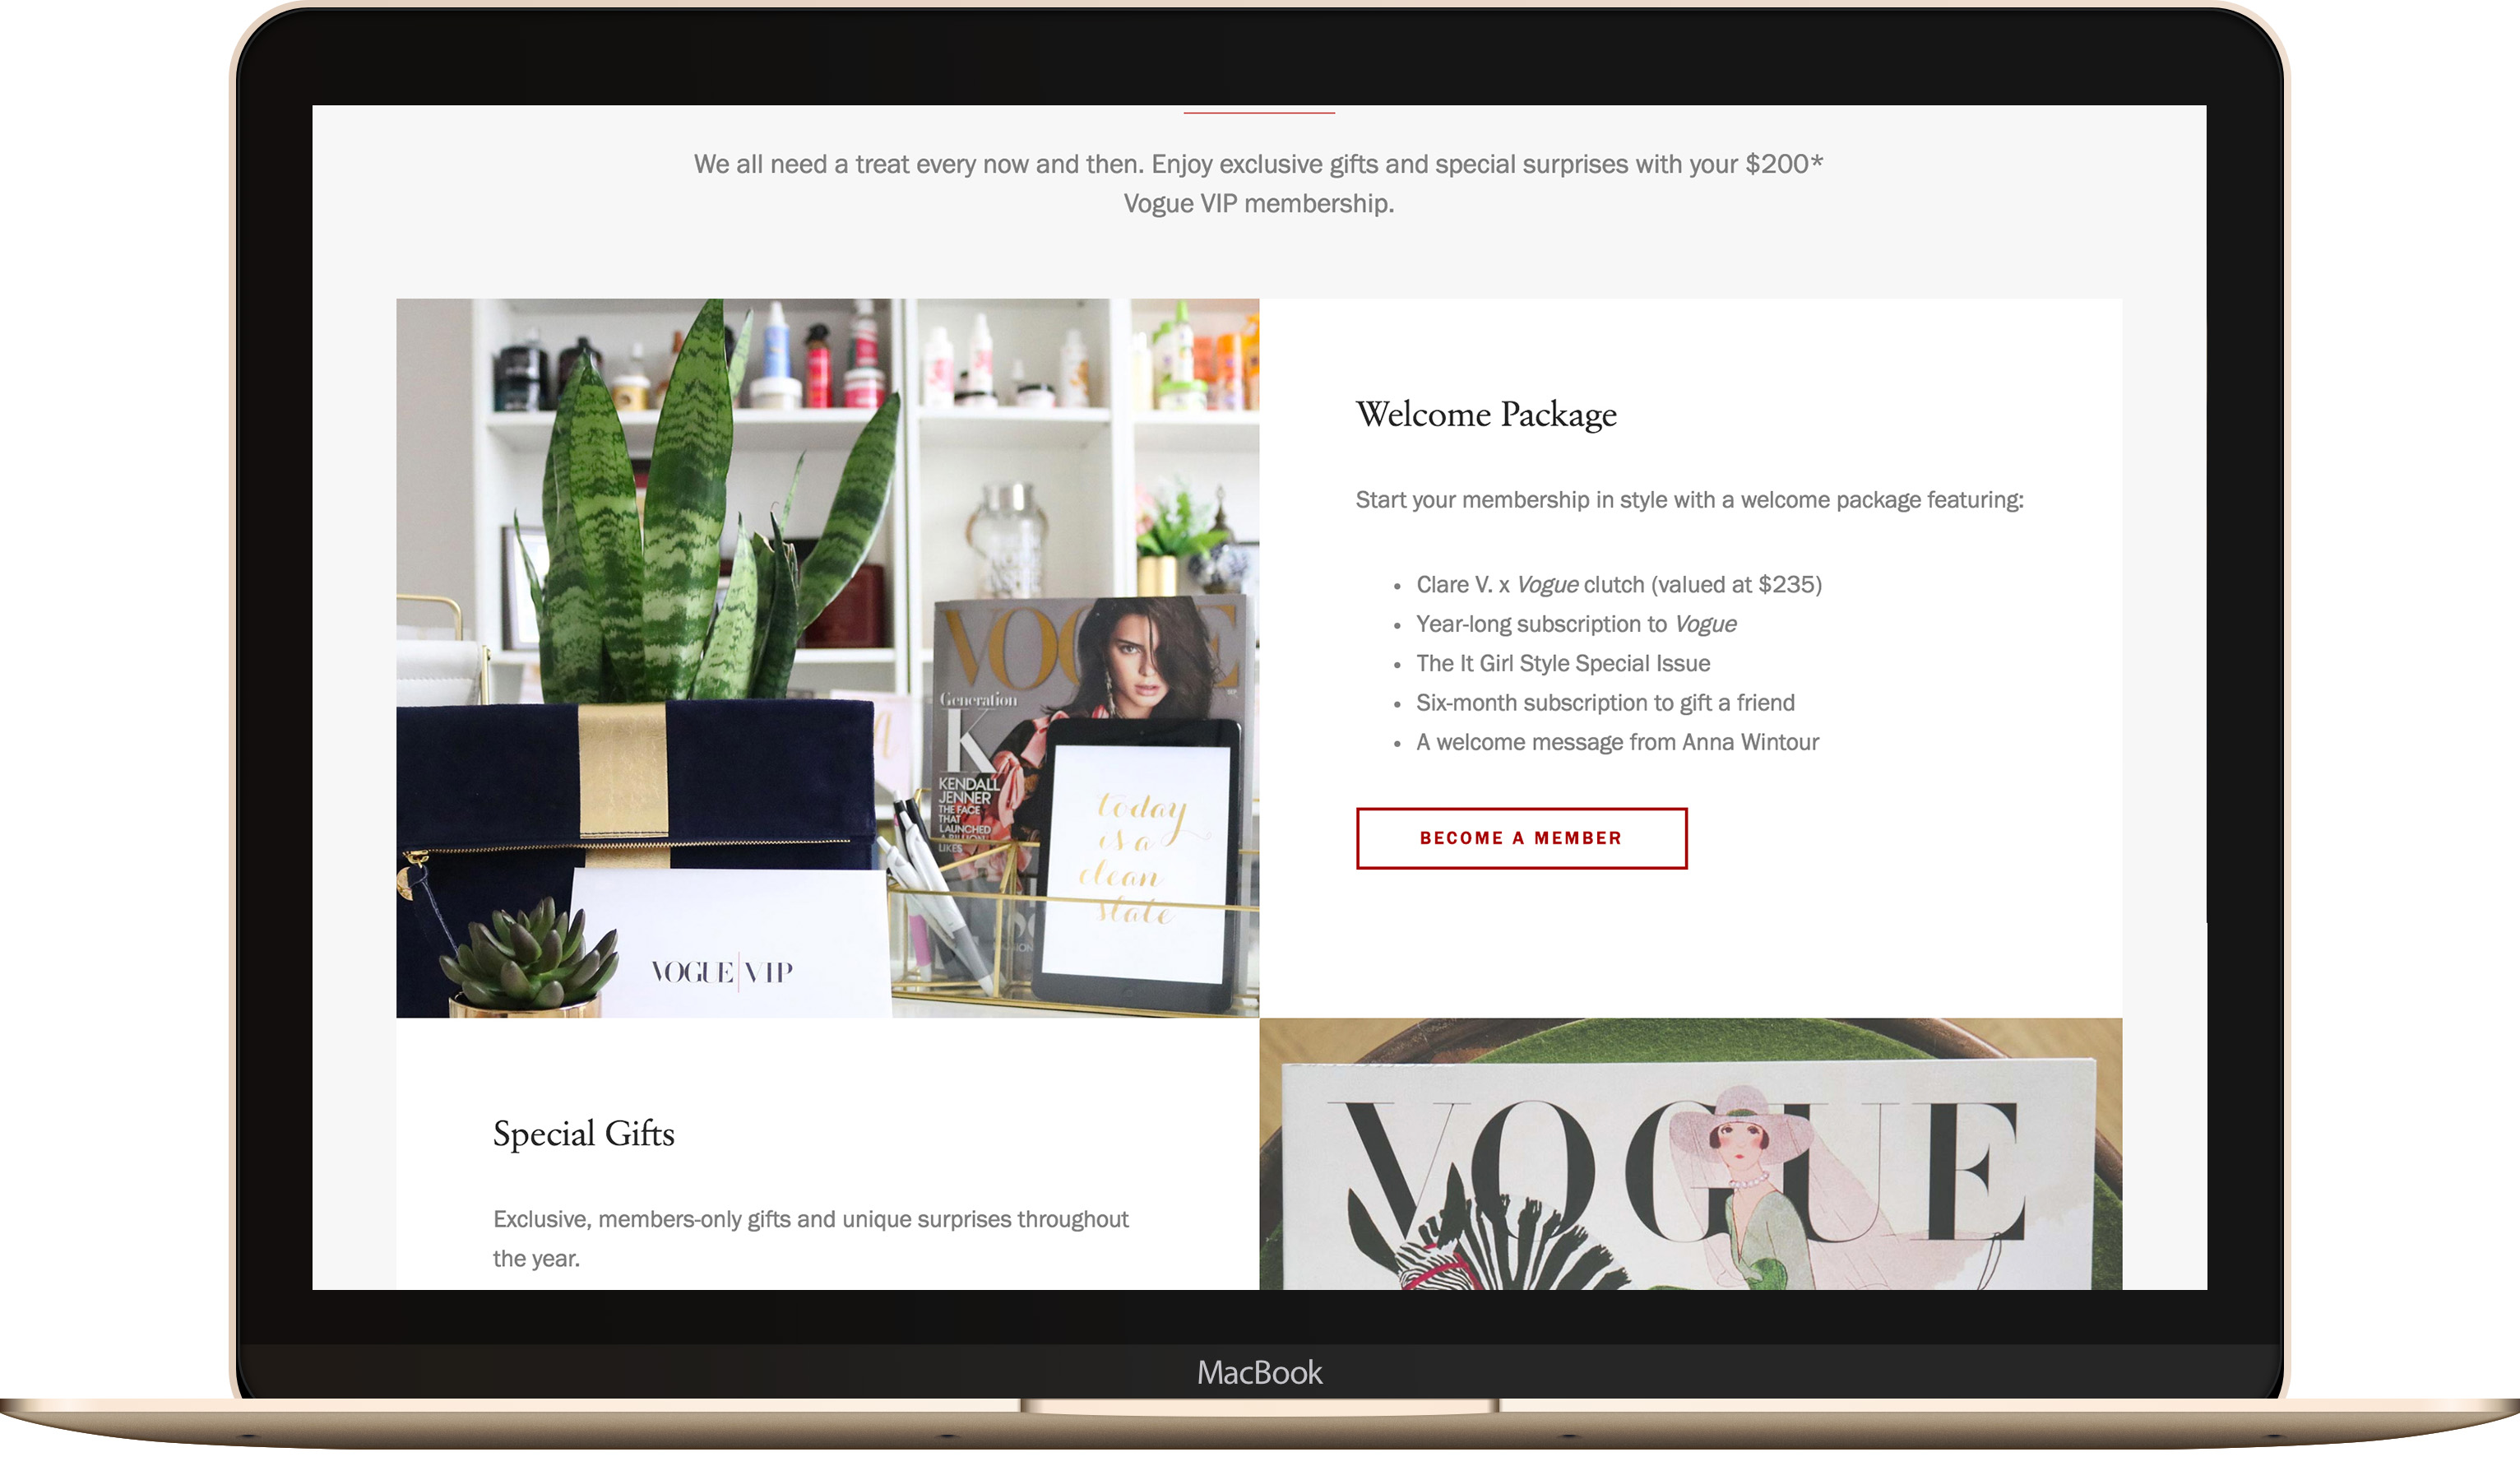 Vogue VIP - Landing Page - Exclusive Products